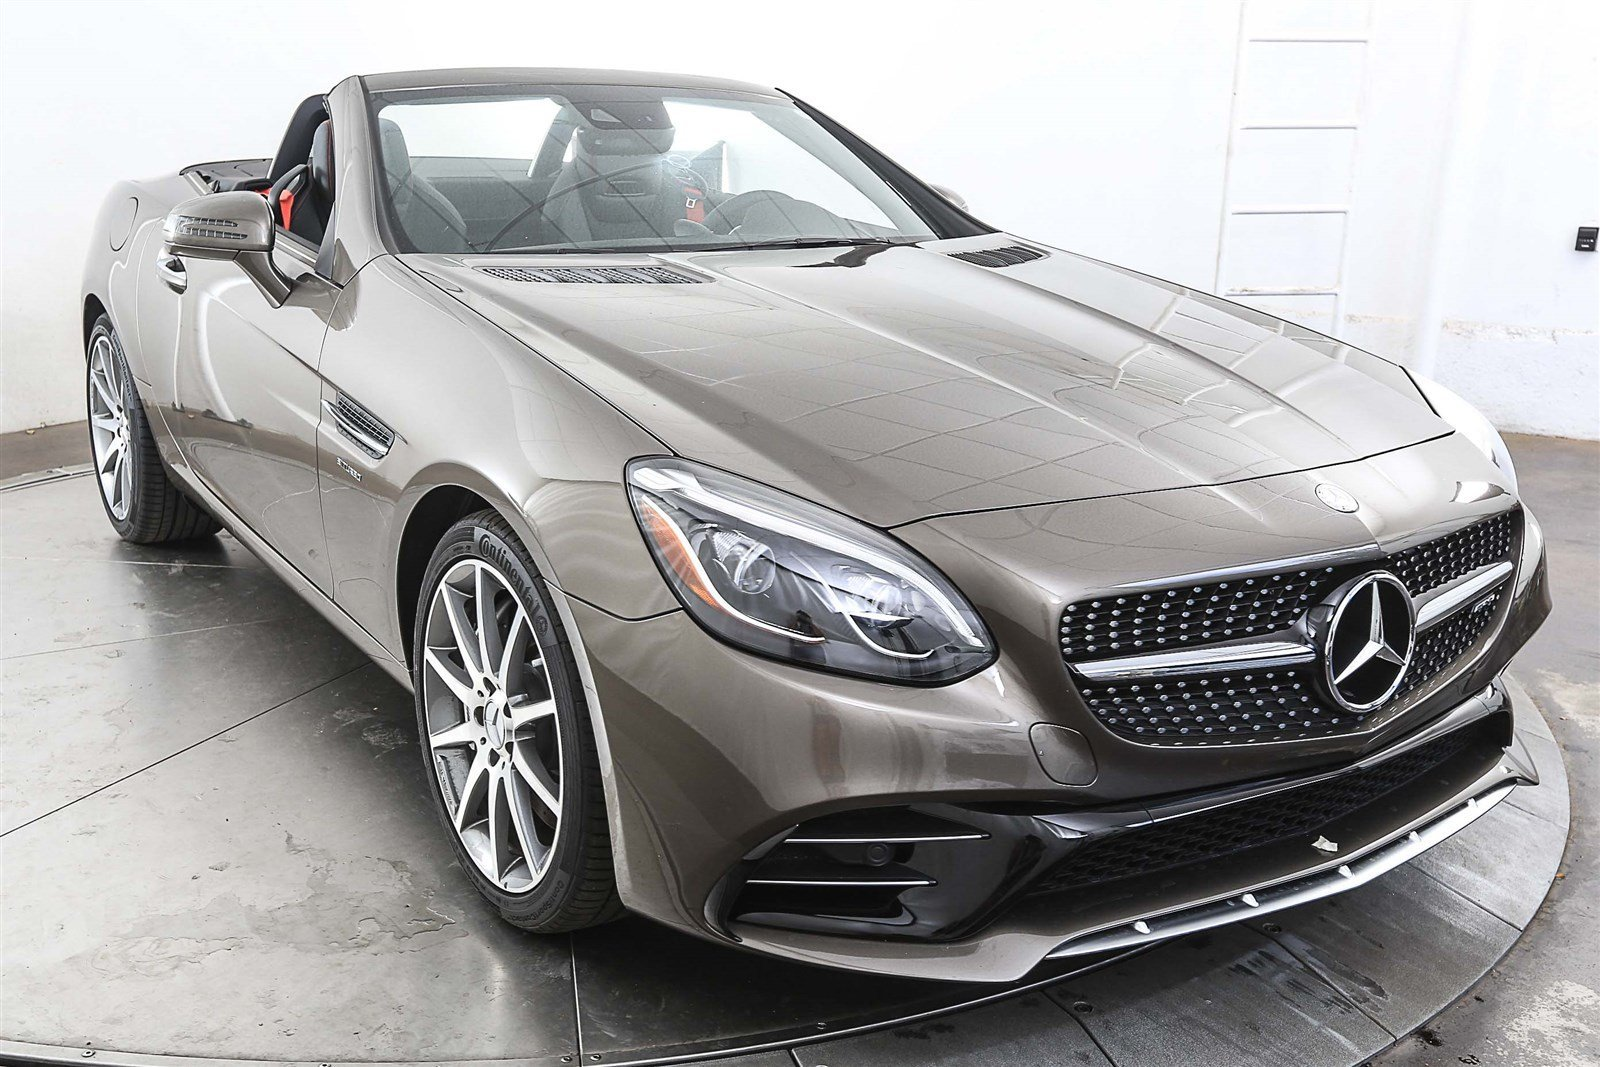 new 2017 mercedes benz slc slc 43 amg roadster roadster in austin m26161 mercedes benz of austin. Black Bedroom Furniture Sets. Home Design Ideas